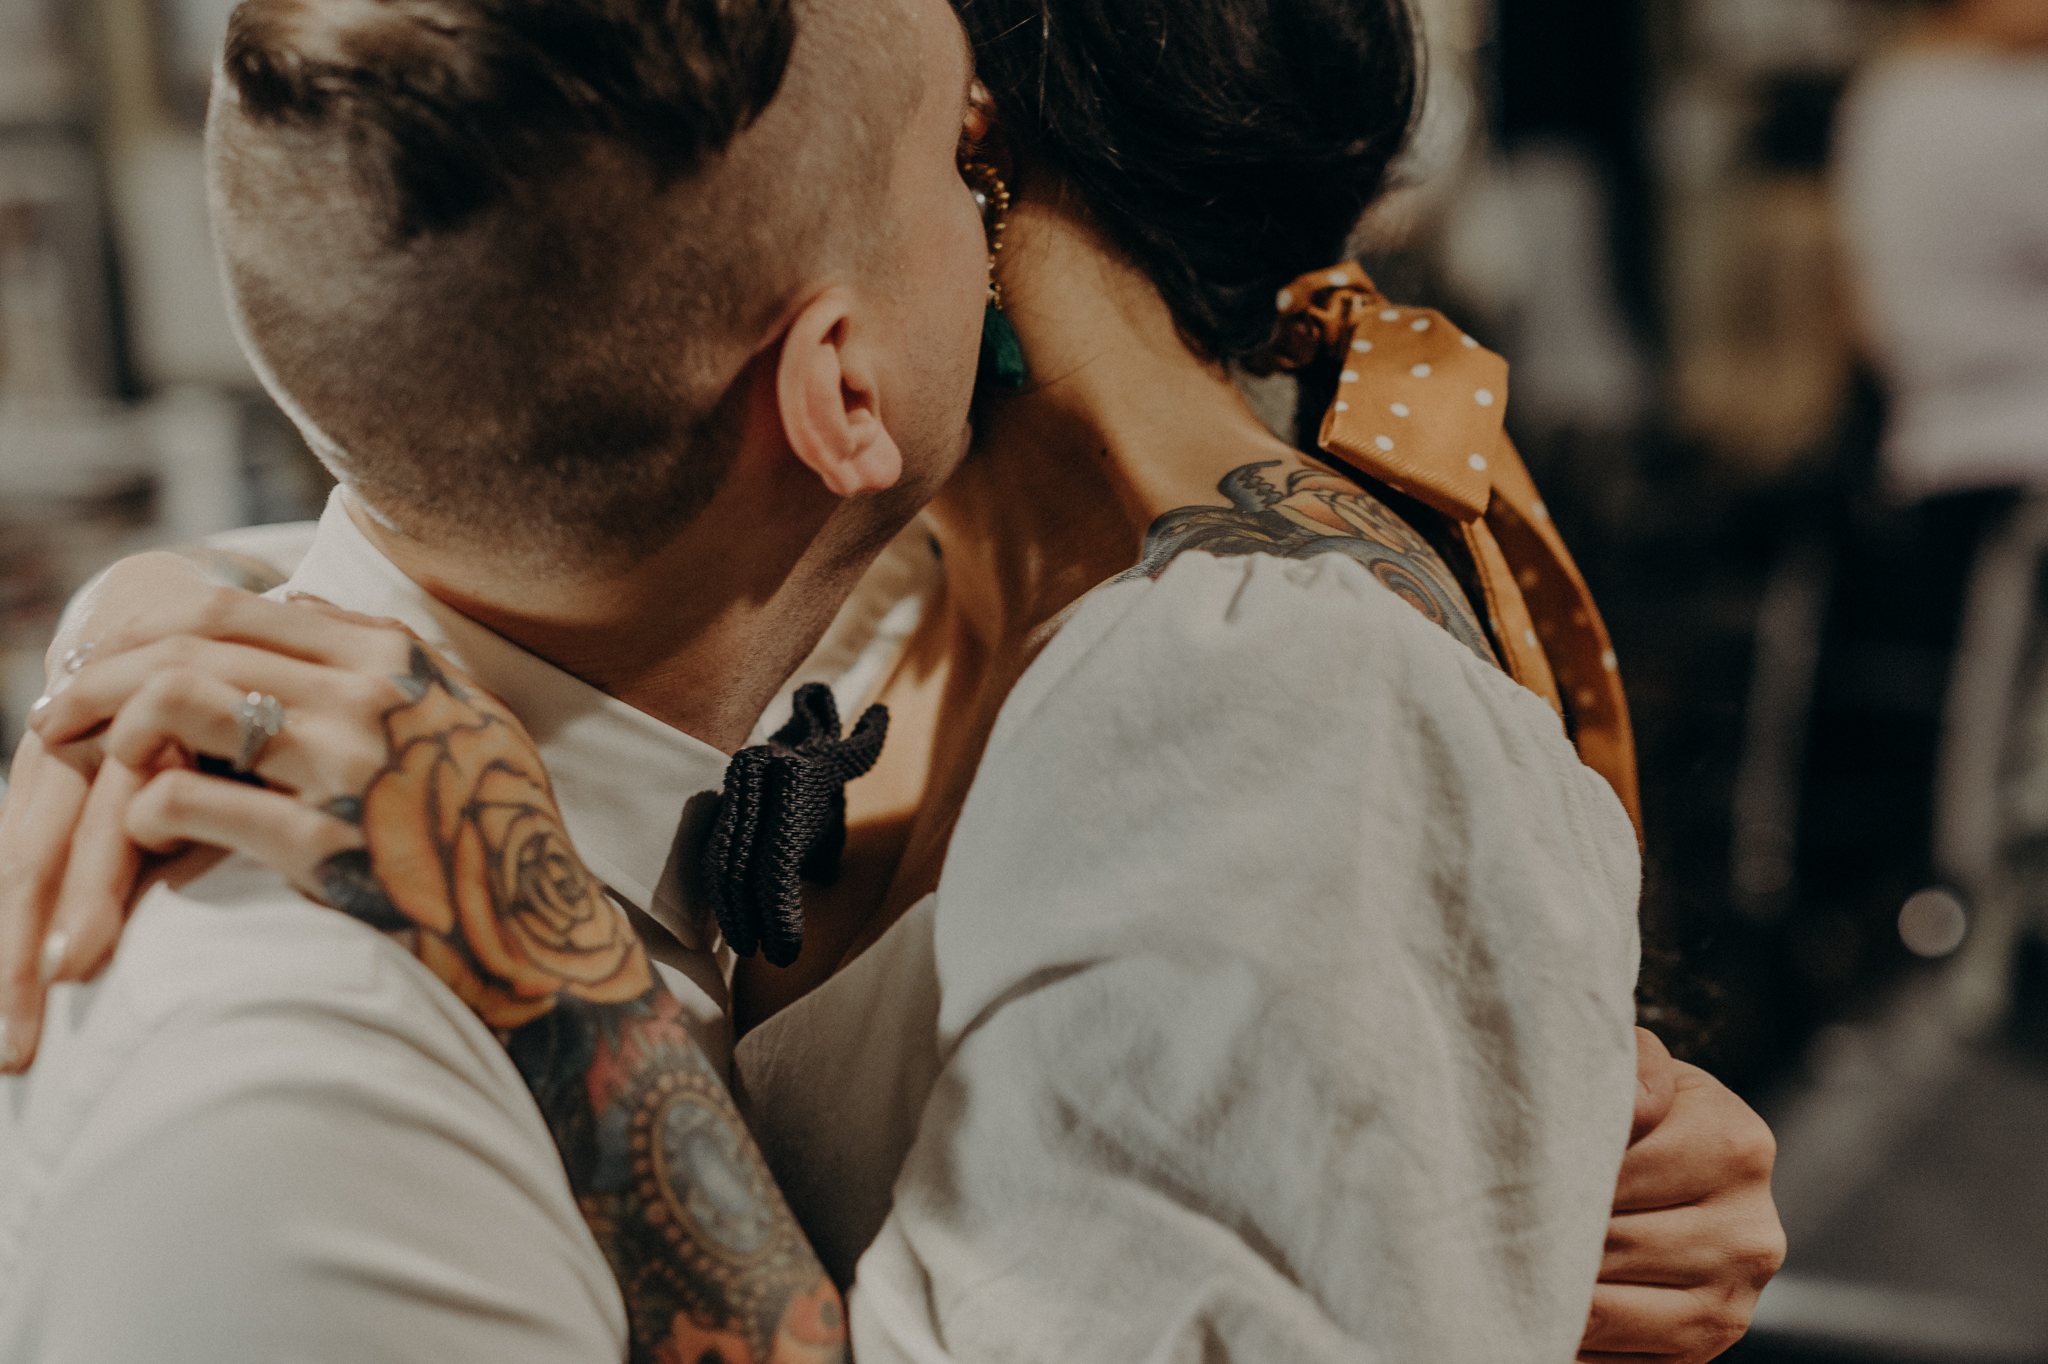 Wedding Photographer in LA - Los Angeles Wedding Photos - Tattoo Shop Engagement Session - IsaiahAndTaylor.com-016.jpg